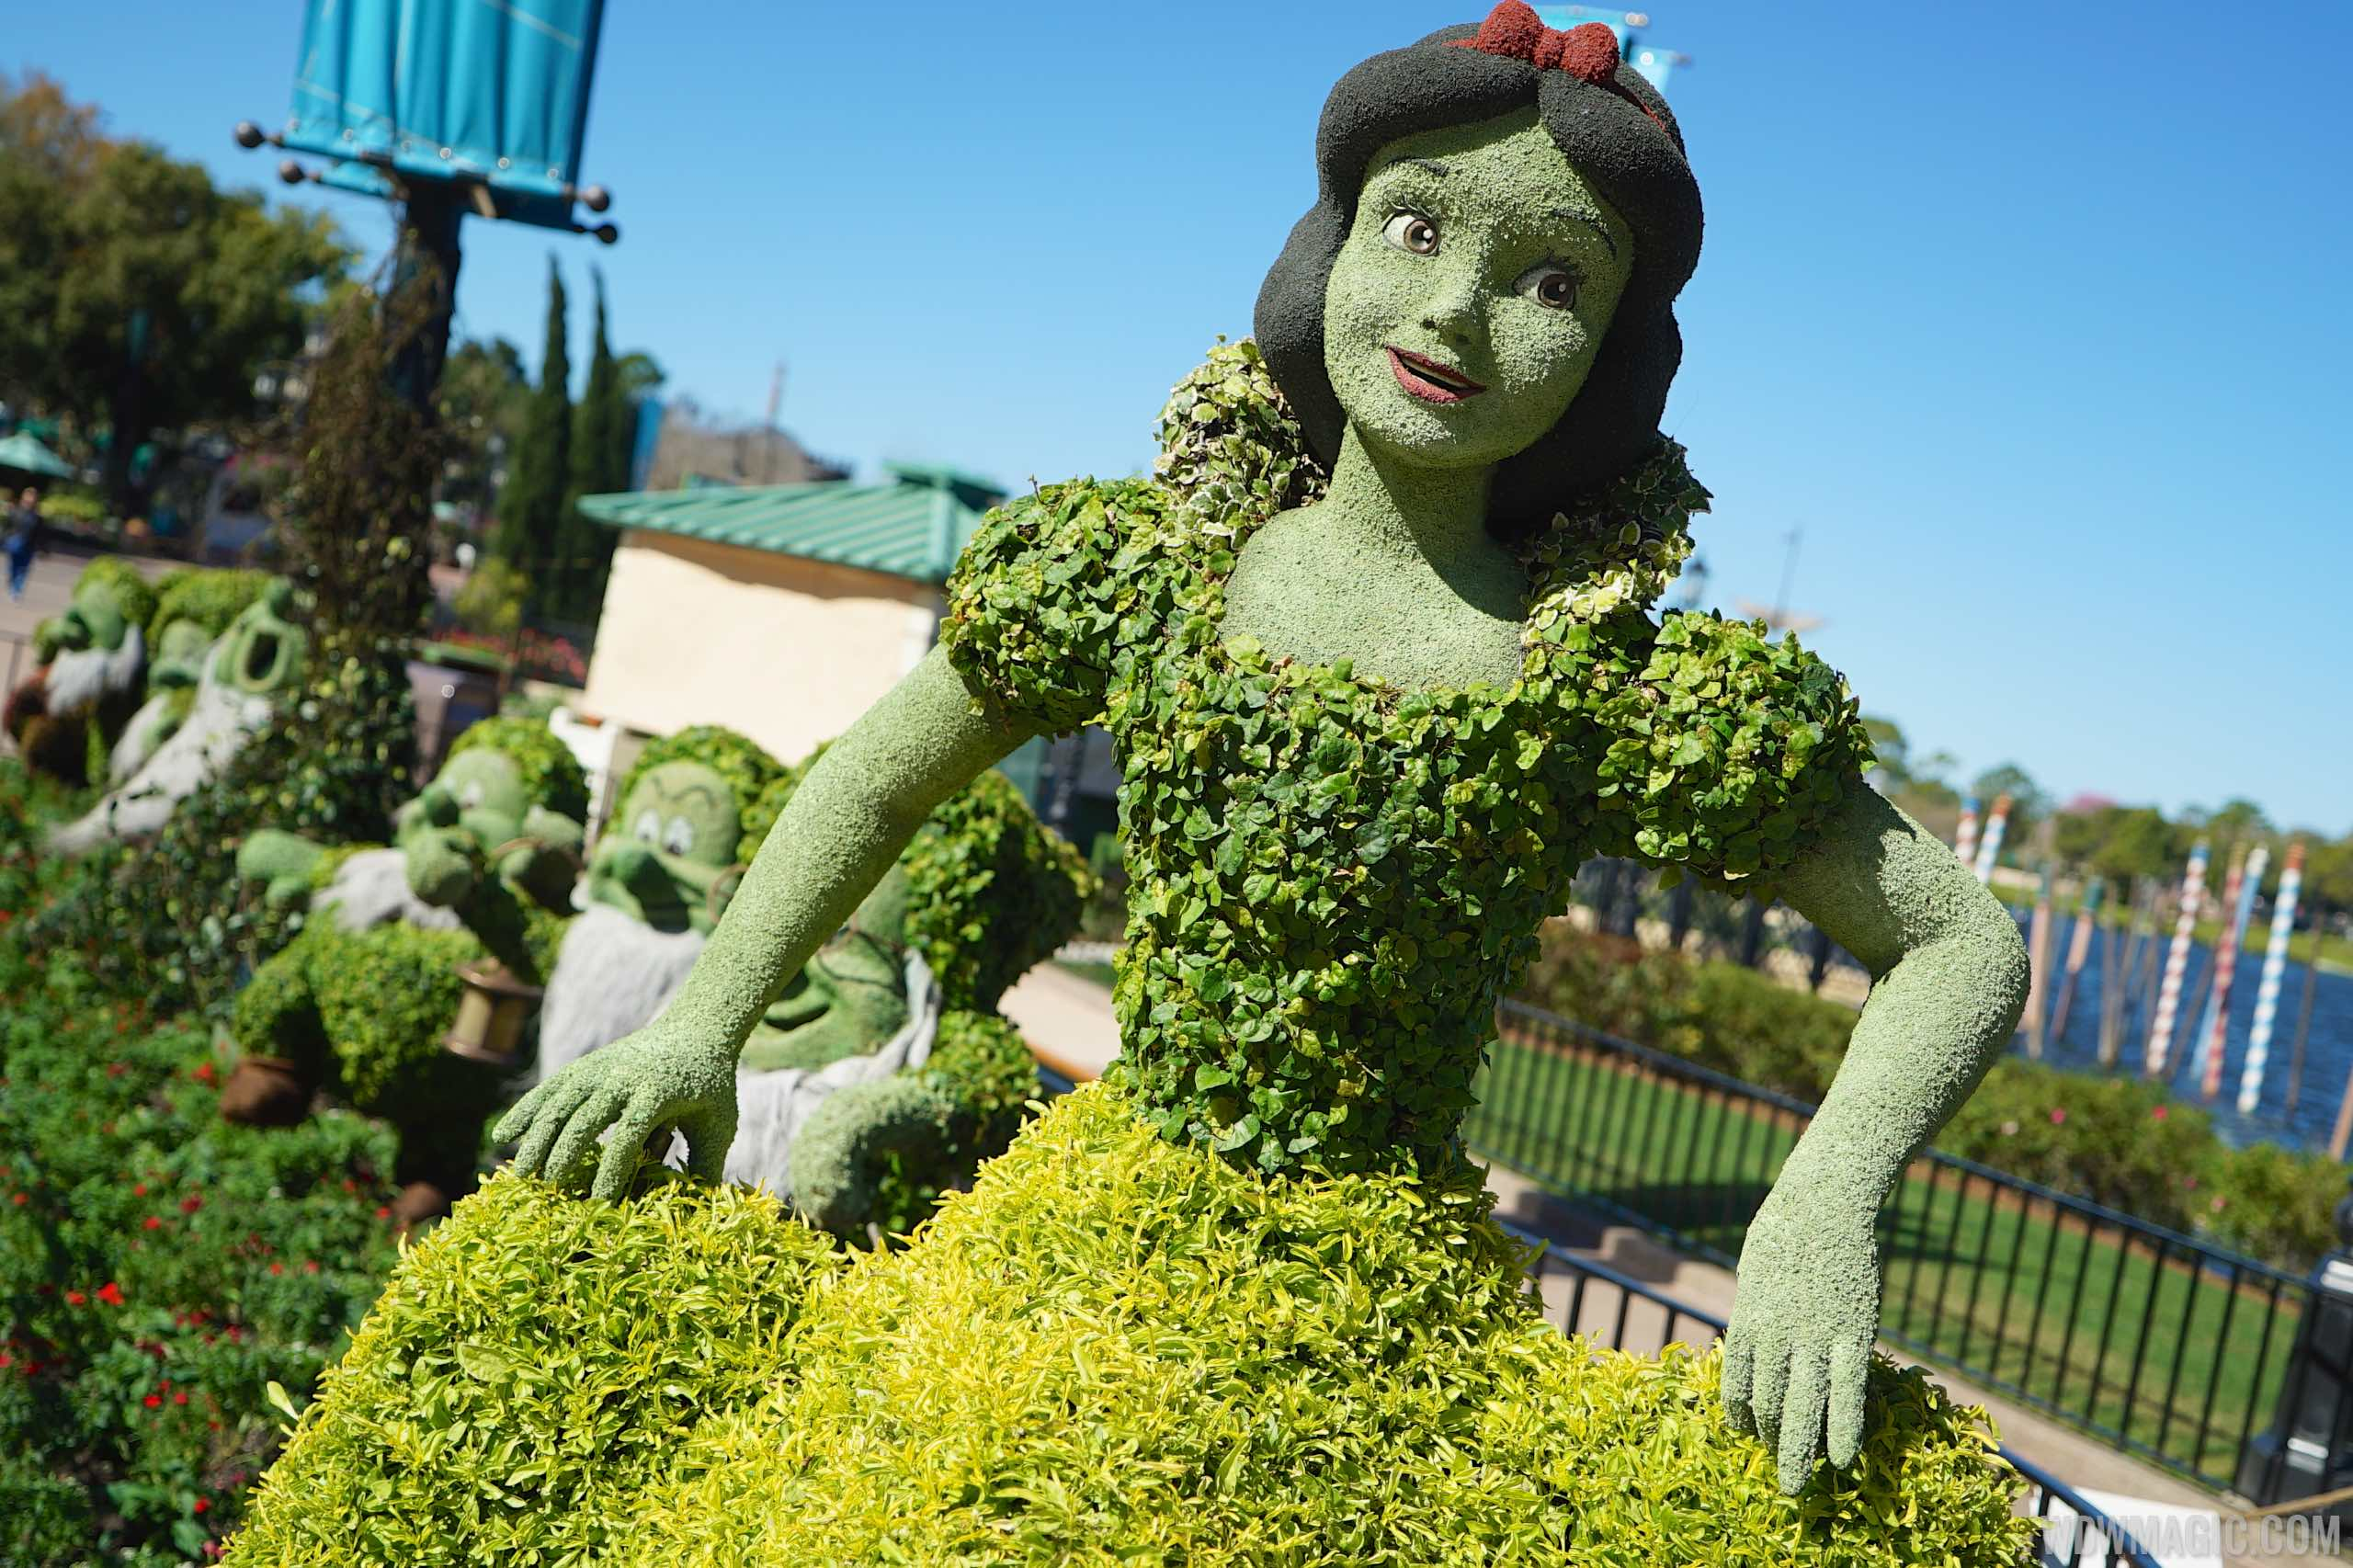 Kitchen Garden International New Outdoor Kitchens And Topiaries To Join The 2017 Epcot